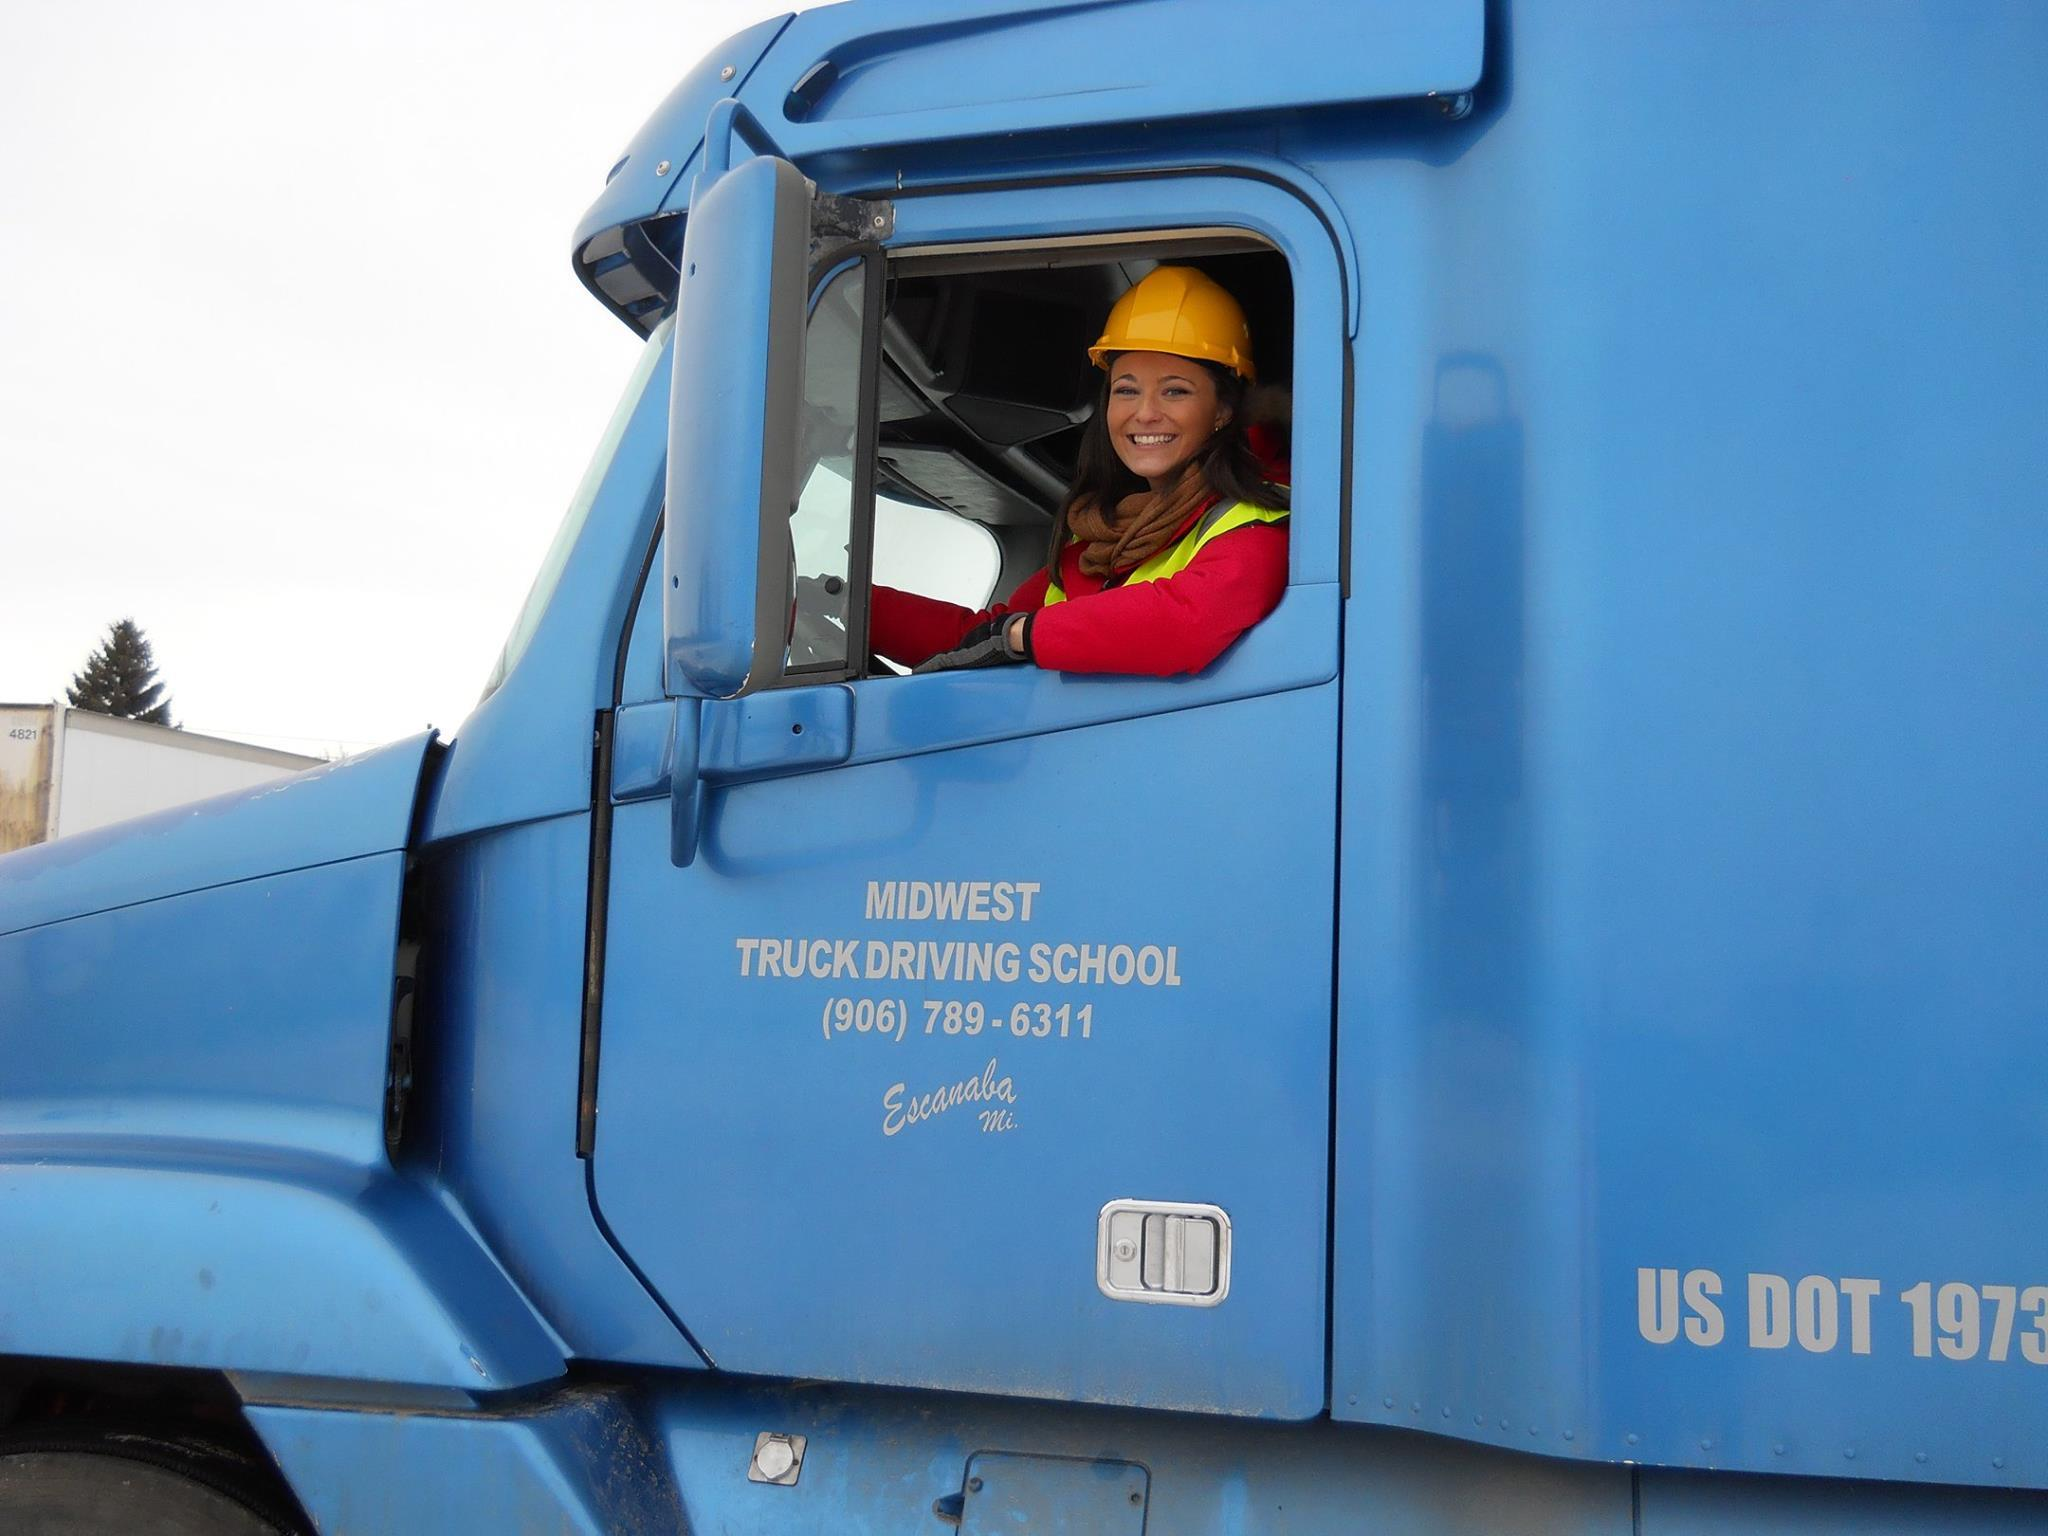 Truck Driving Schools in Michigan with Student Reviews